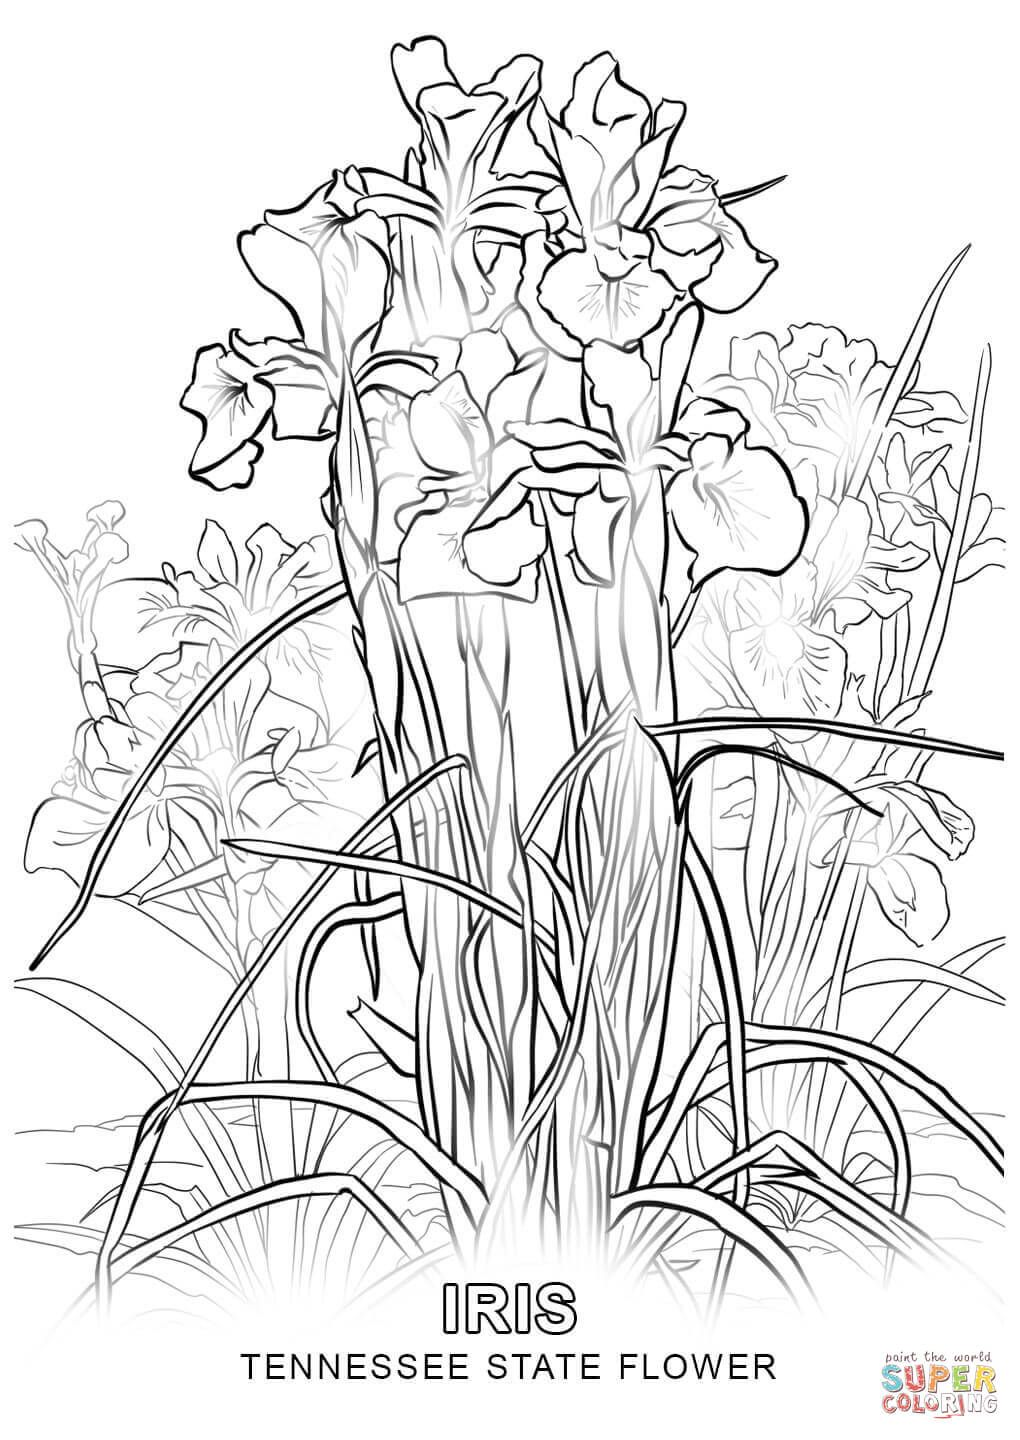 Tennessee State Flower Coloring Page Jpg 1020 1440 Flower